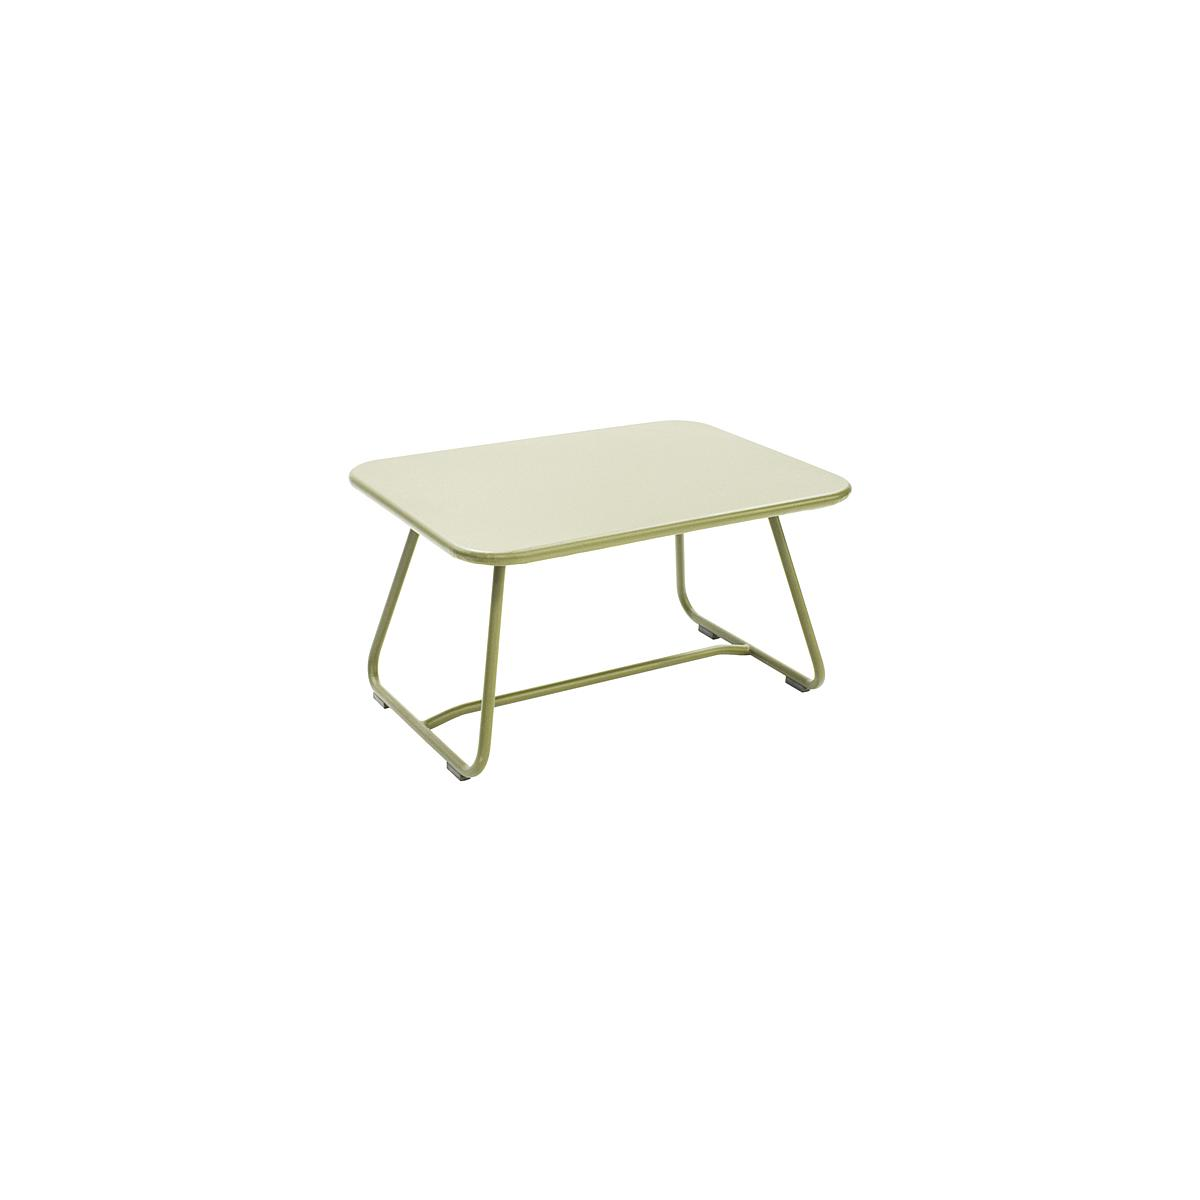 SIXTIES by Fermob Table basse Vert tilleul